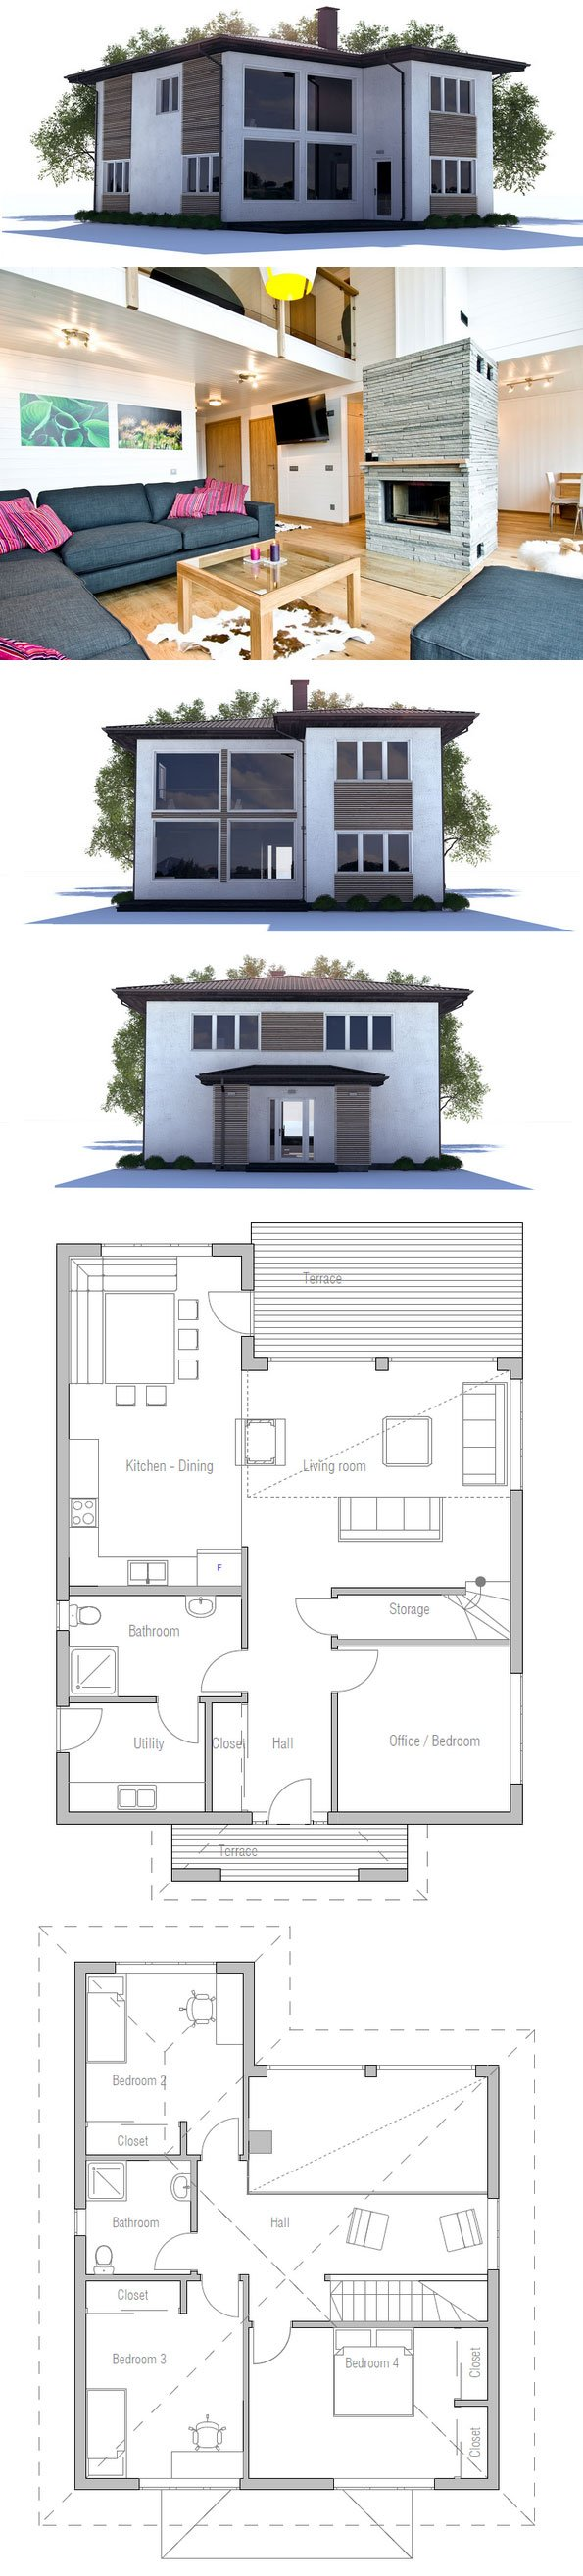 Small House Ch226 House Plans Modern House Plans Small House Plan